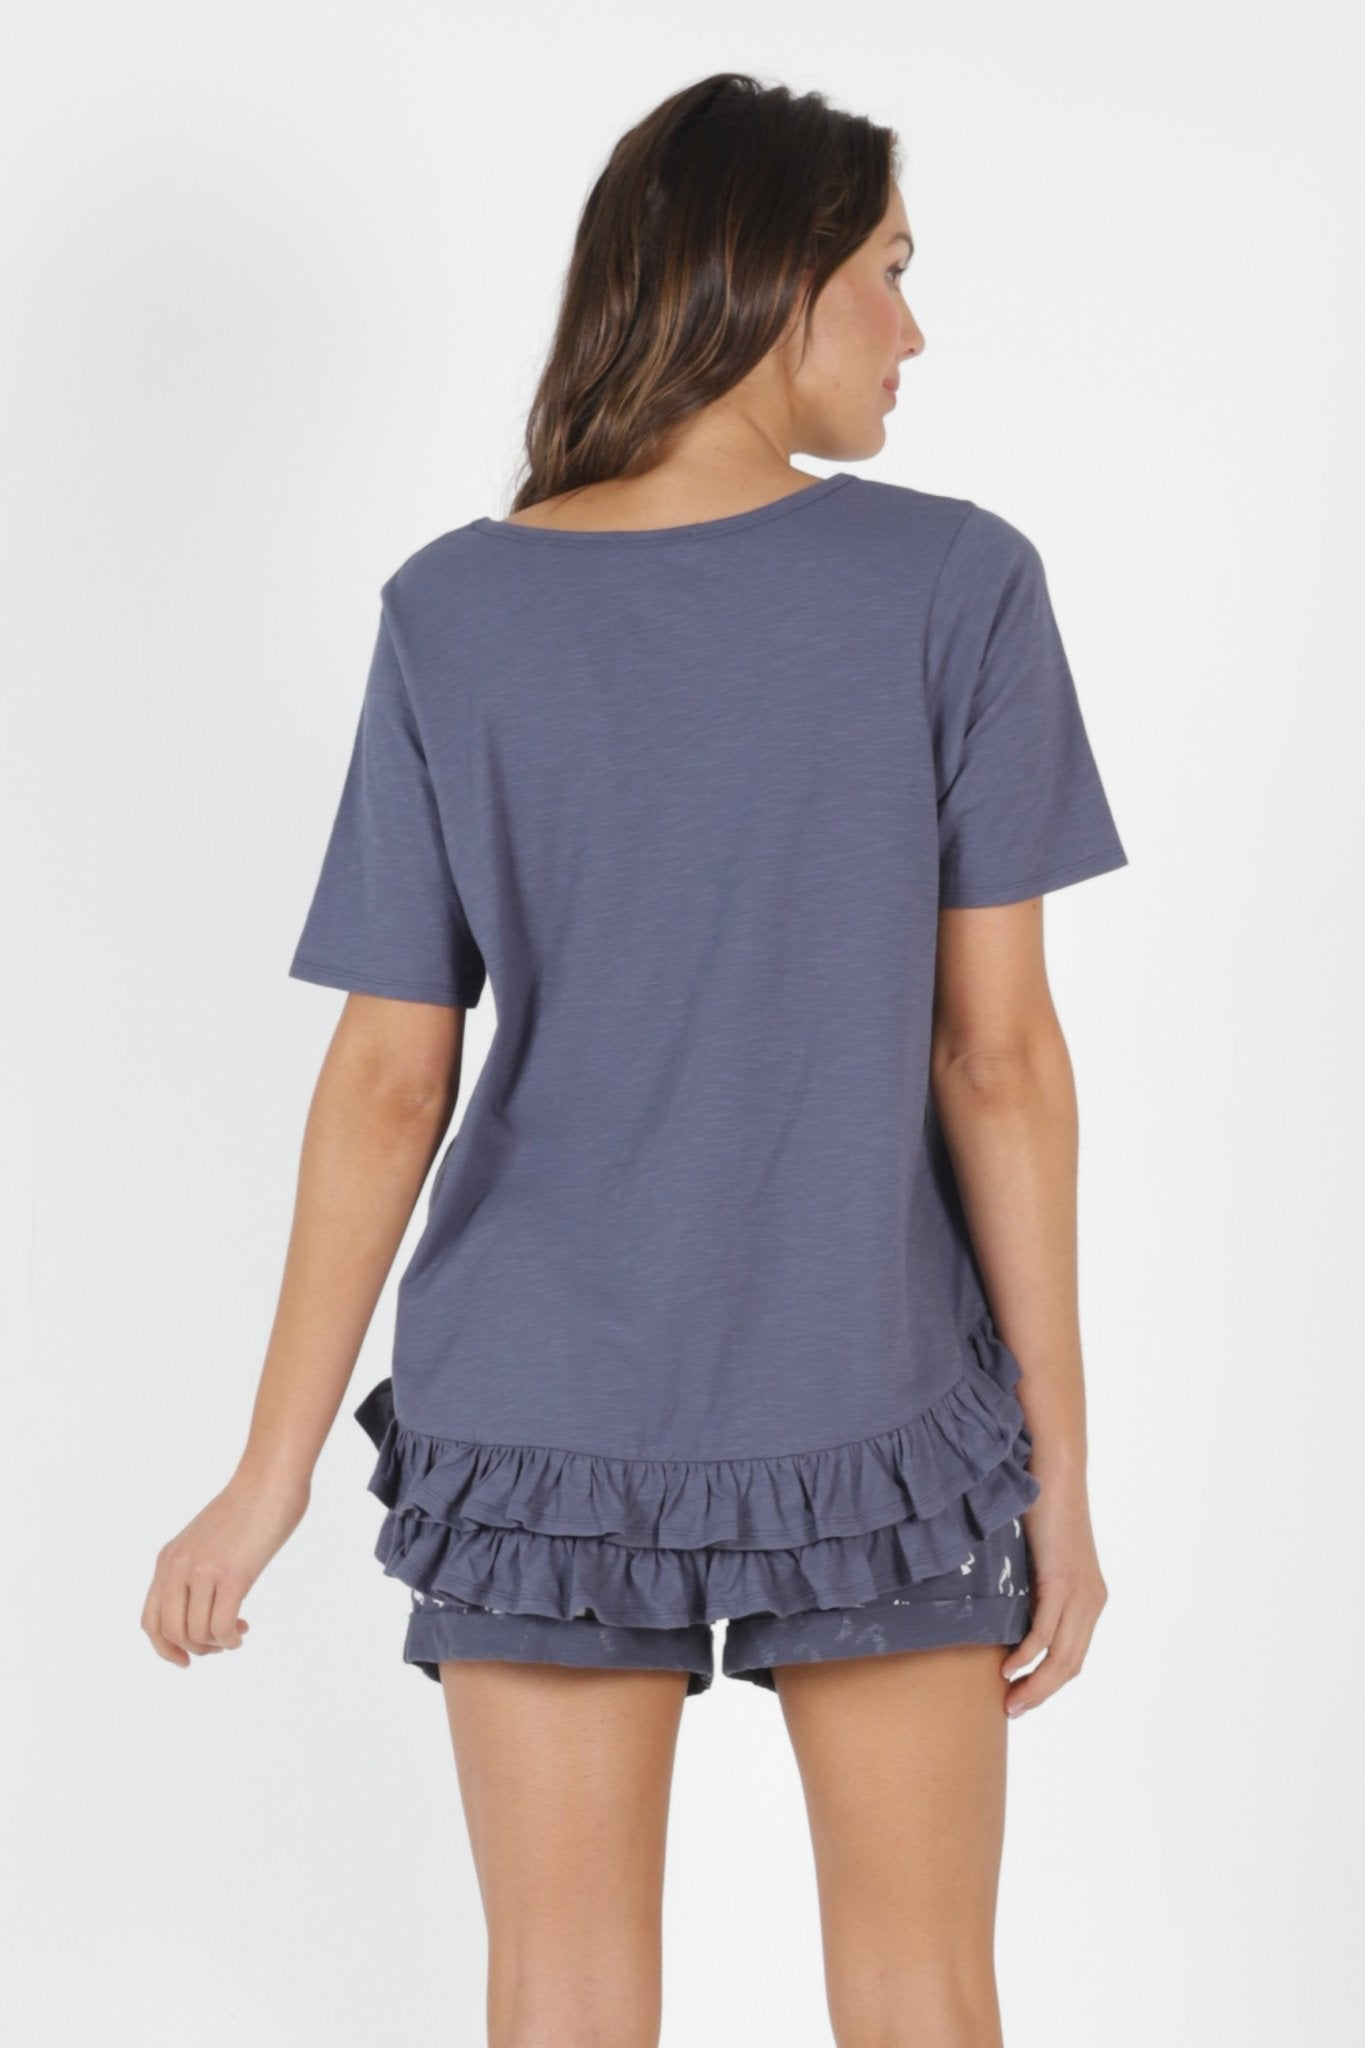 Betty Basics Sorrento Tee in Indi Blue - Hey Sara